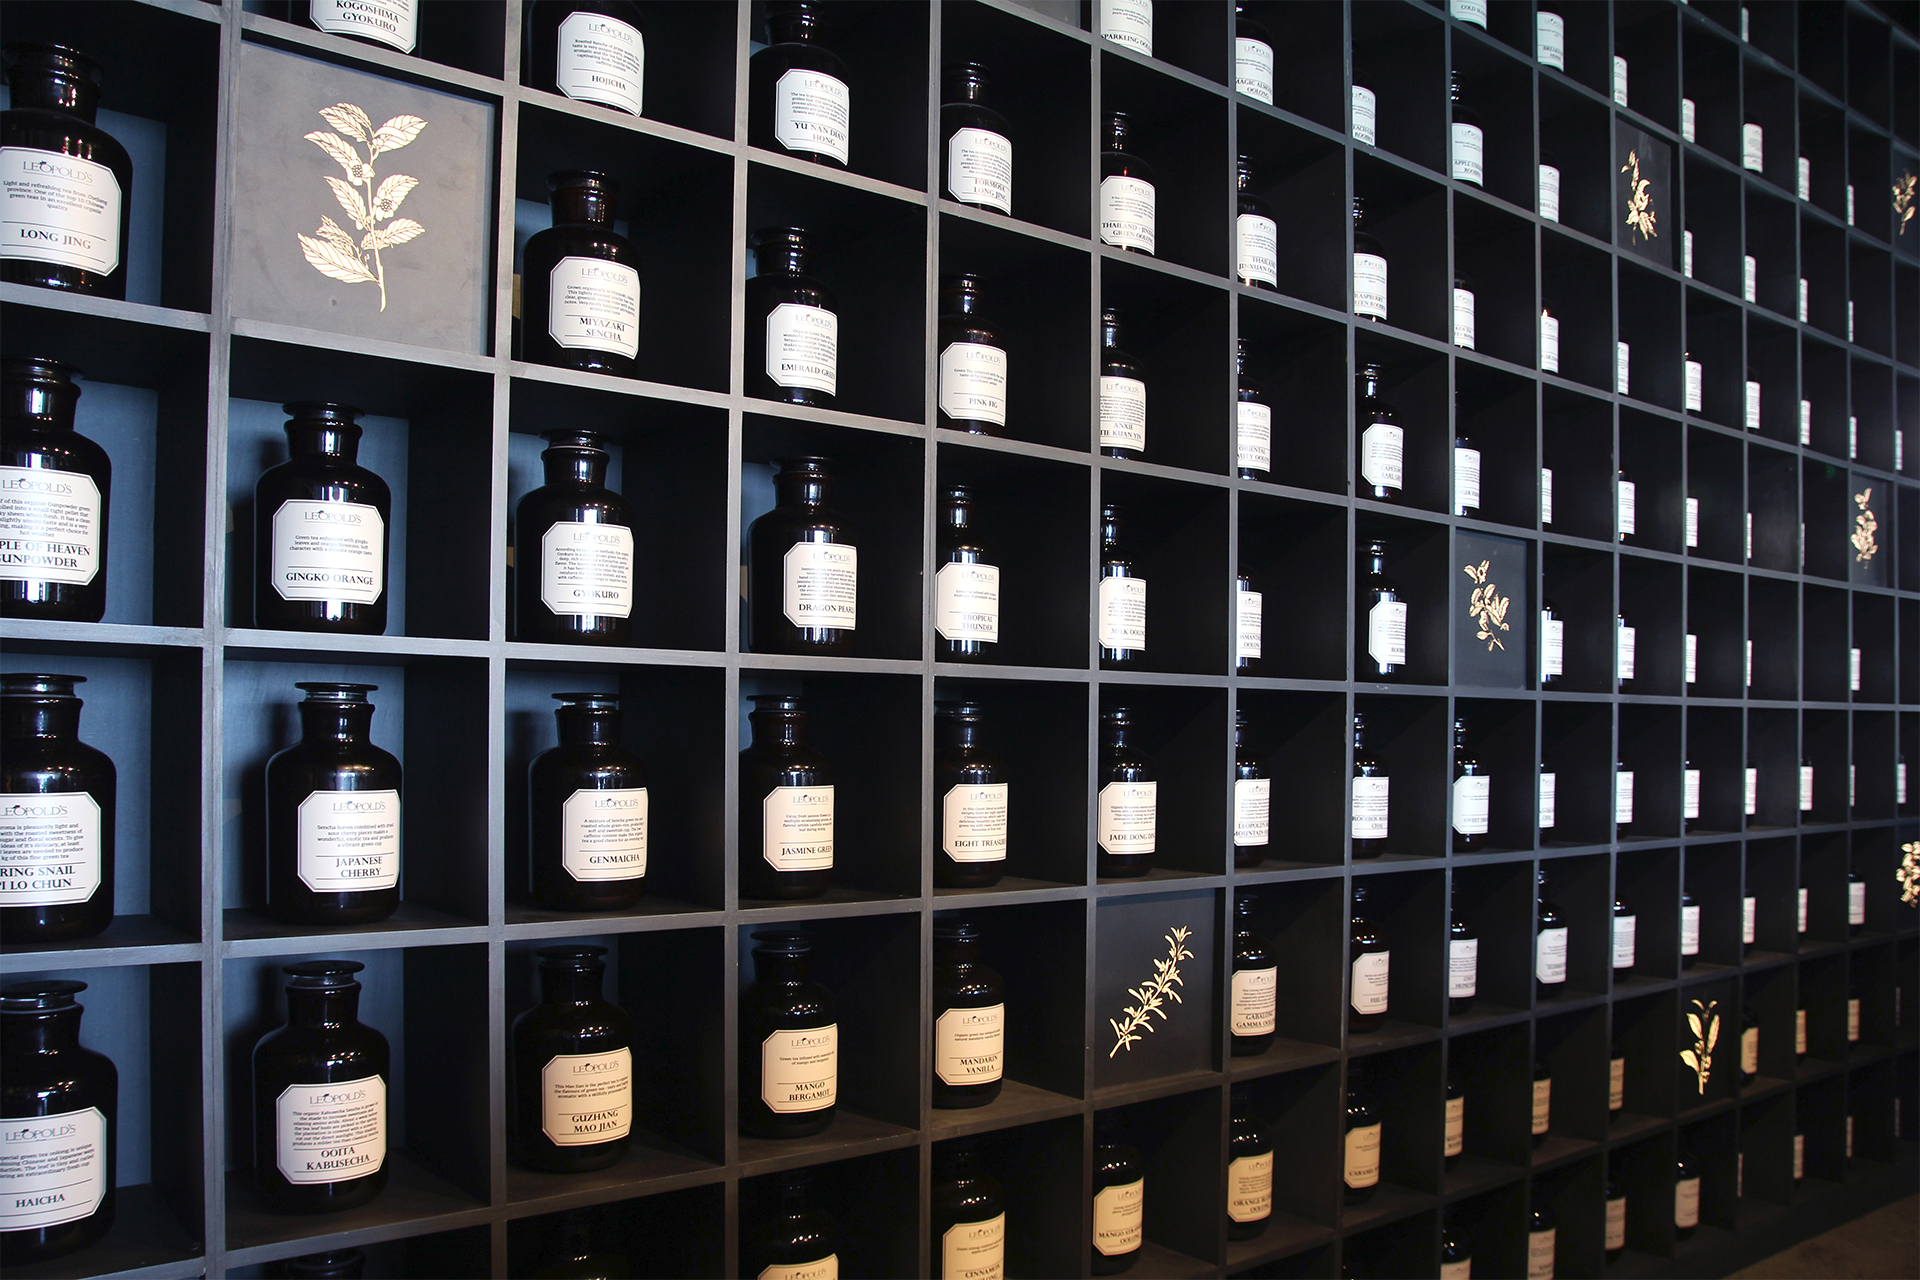 Creneau Interior Design Agency Dubai Middle East Leopold's of London Apothecary Inspiration